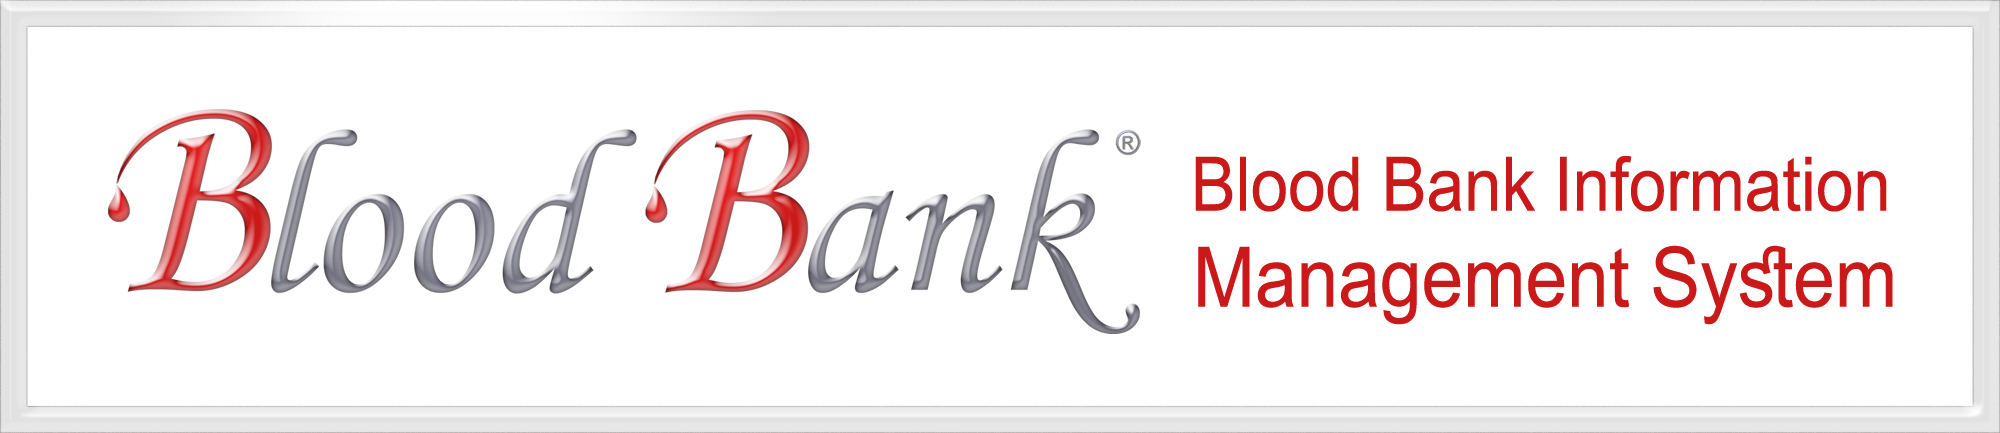 Bloodbank-logo-full